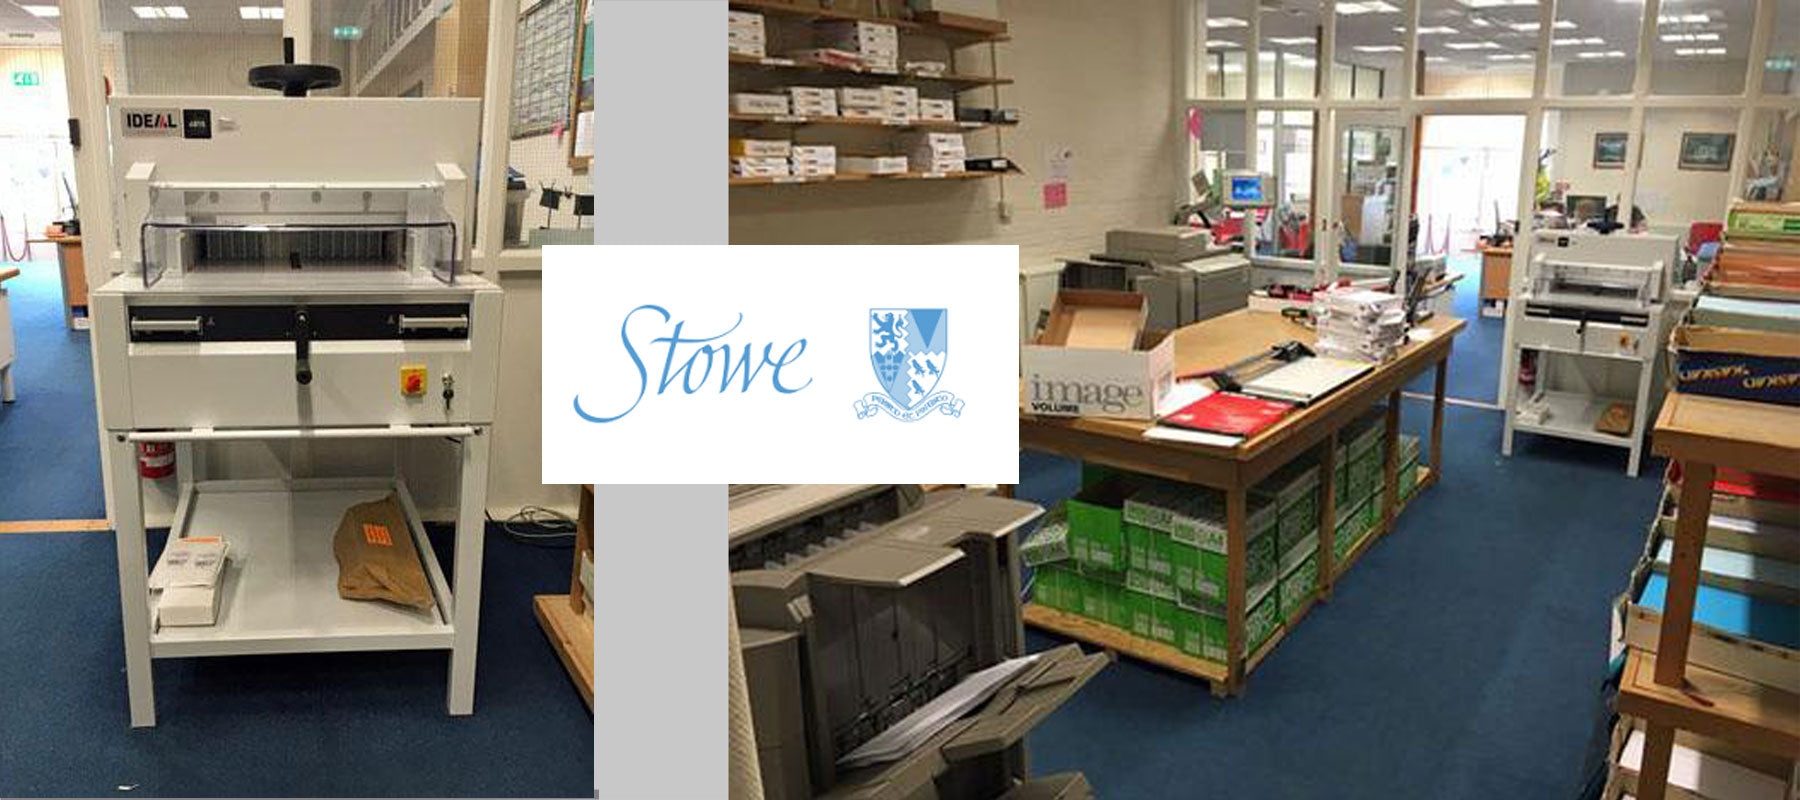 Stowe School upgrade to a new Ideal 4815 Guillotine